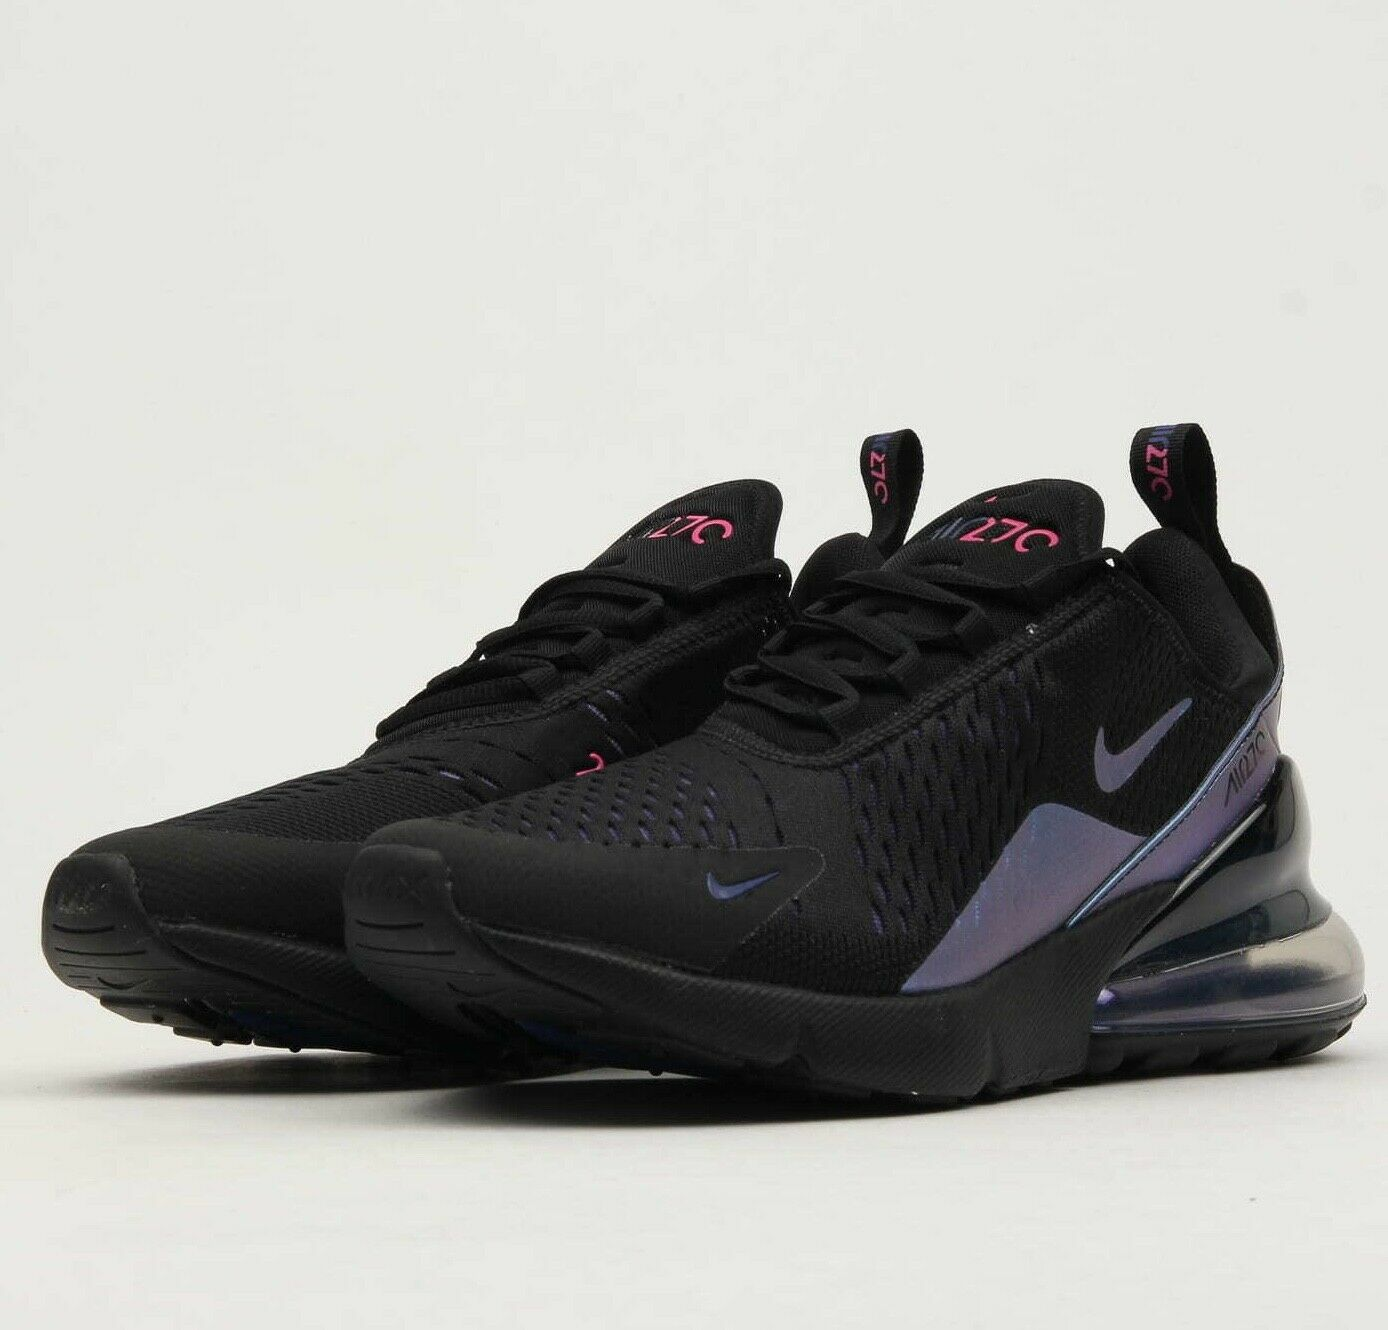 826655e96c32c Nike Air Max 270 Regency Purple AH8050-020 Airmax Running shoes Sneakers  NIB. Nike Air More Uptempo Black gold Size ...